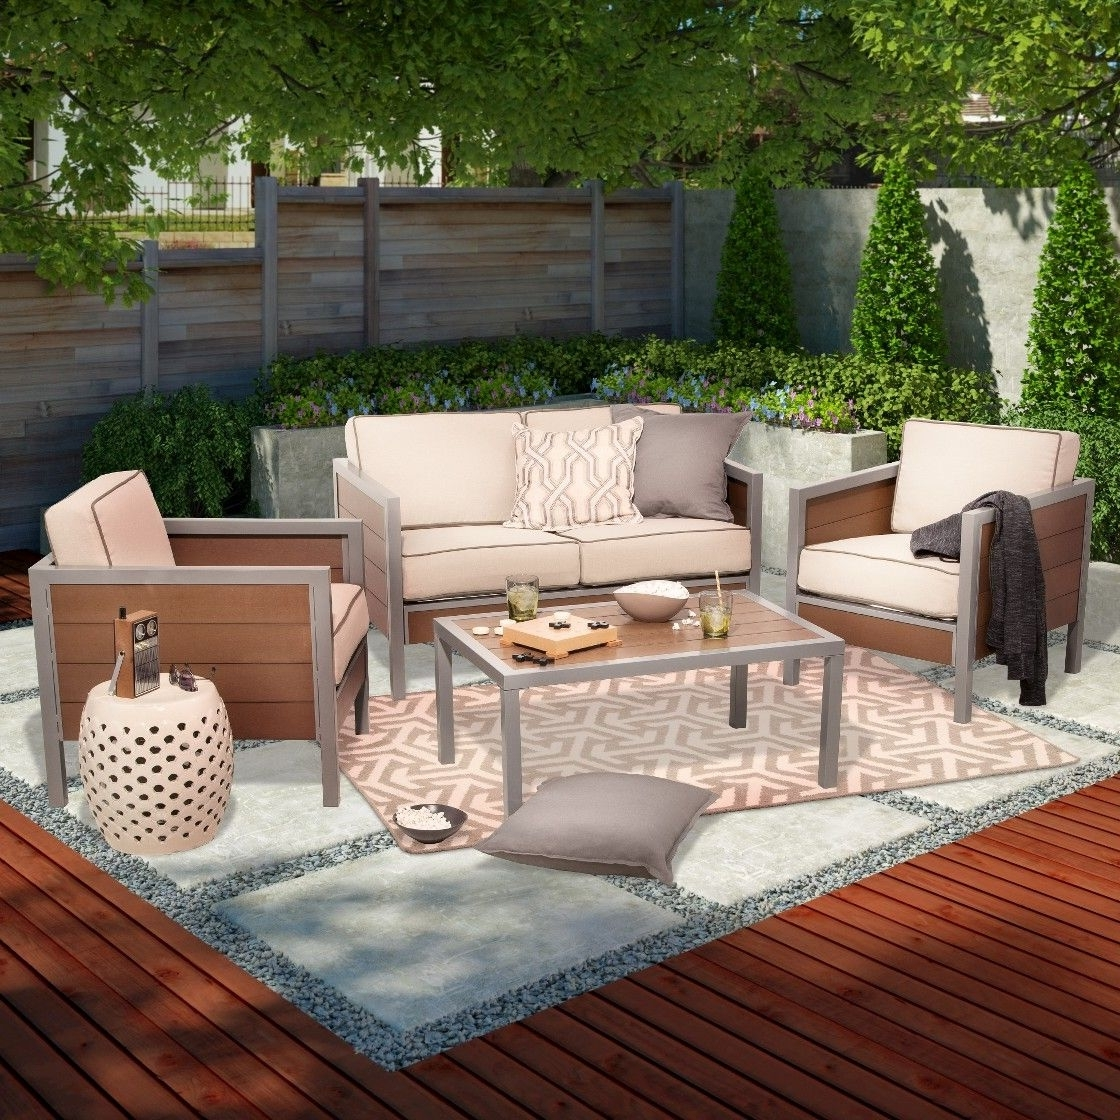 Target Patio Furniture Conversation Sets Intended For Most Popular 849. On Sale At Target. (View 14 of 20)